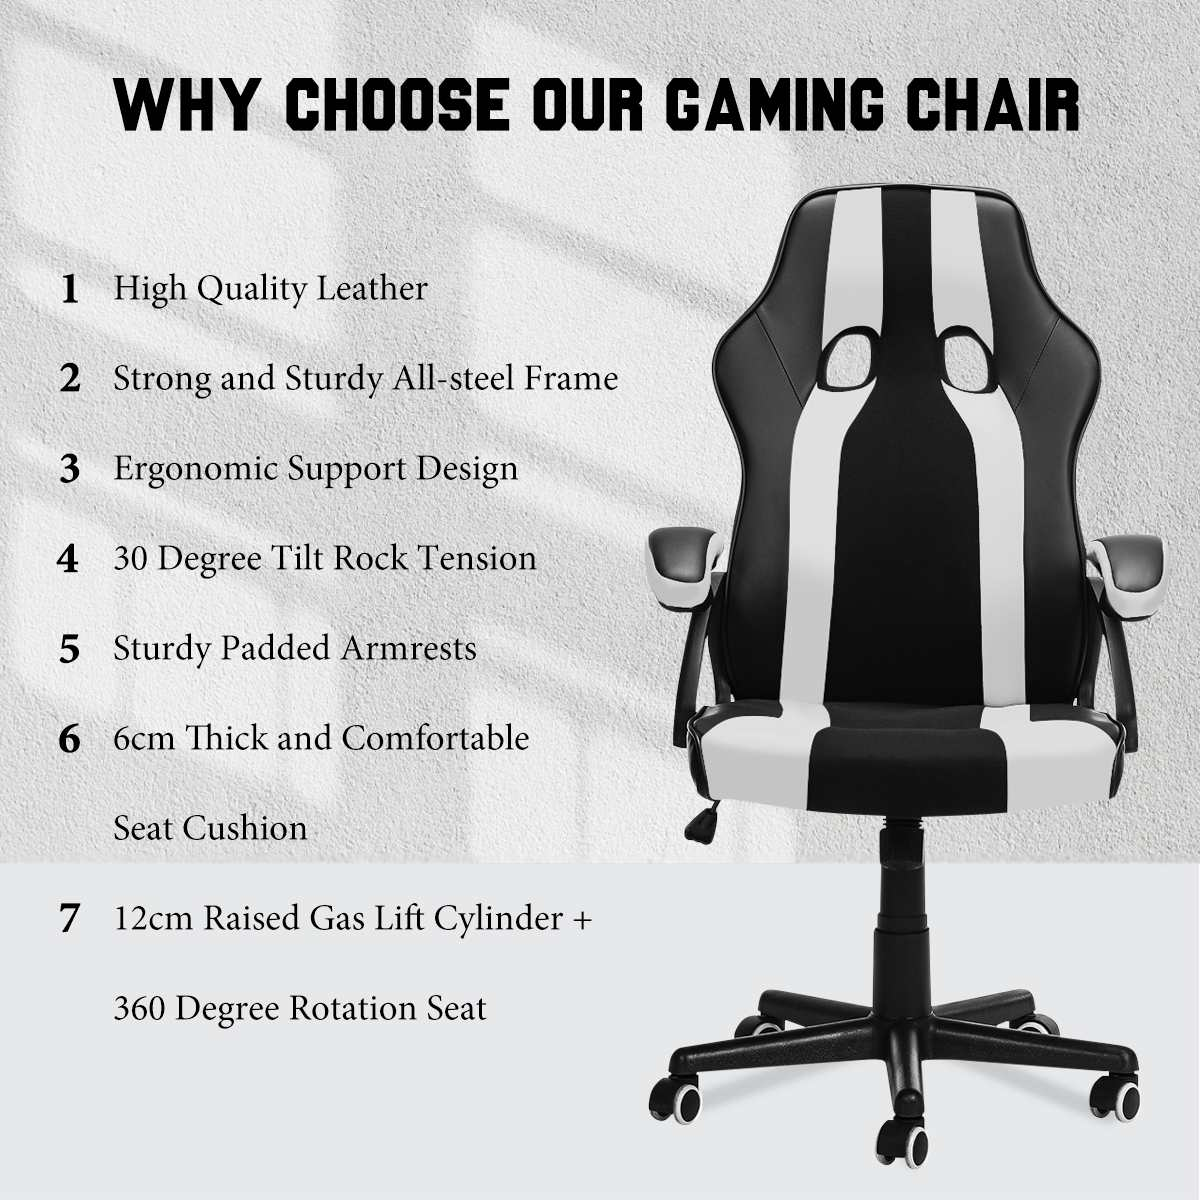 Hd7f739d84e5e4d45991b48956d9b3d21f - Gaming Office Chairs Executive Computer Chair Desk Chair Comfortable Seating Adjustable Swivel Racing Armchair Office Furniture